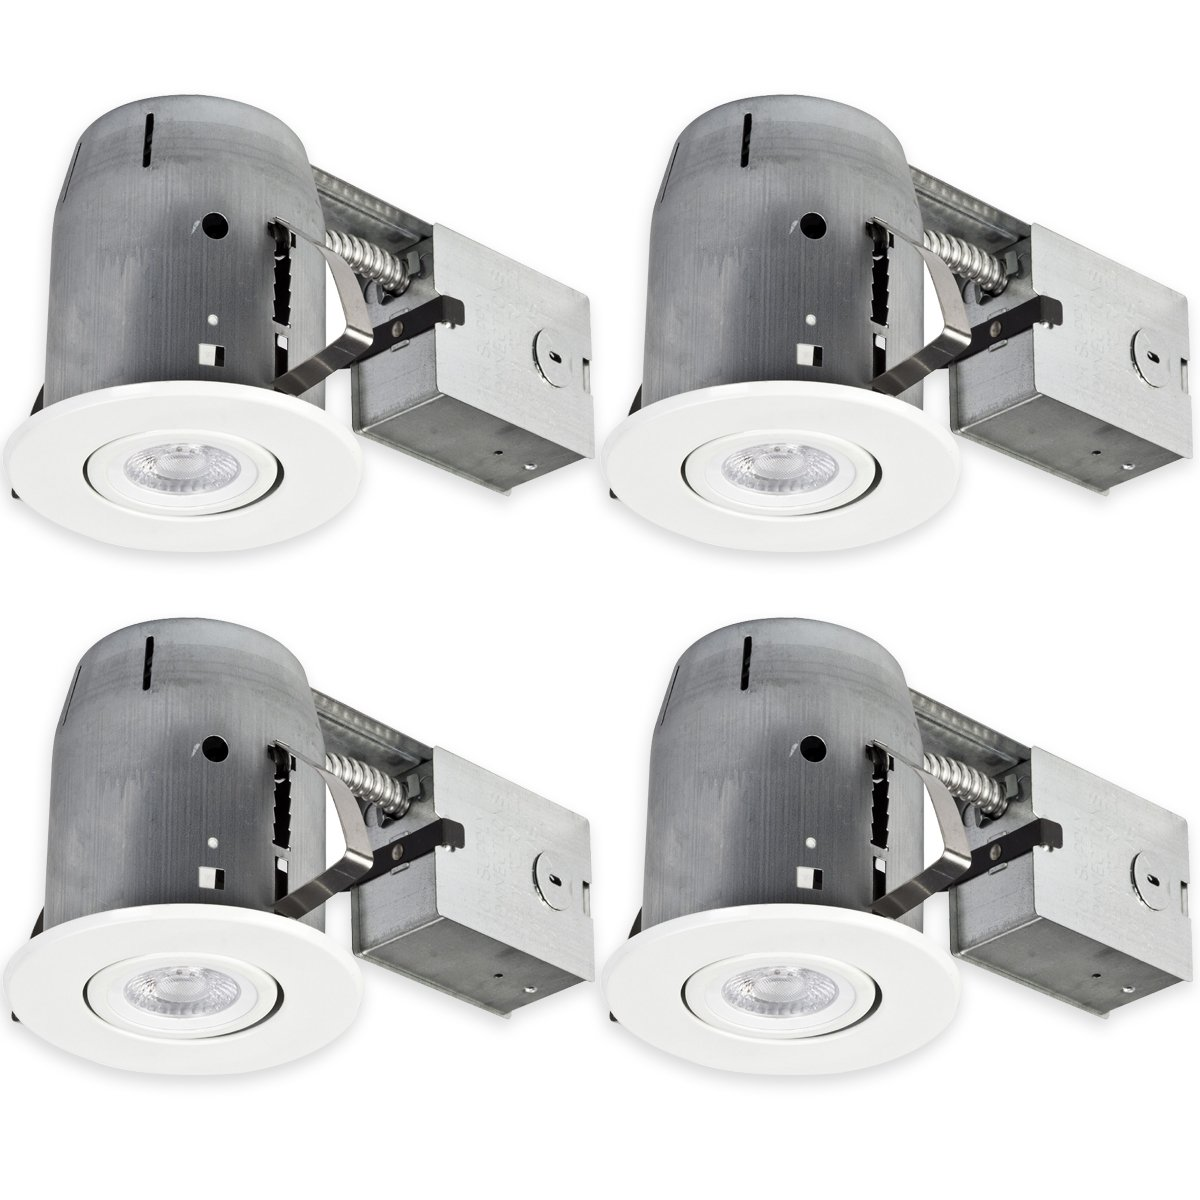 Globe Electric 5'' LED IC Rated Swivel Round Trim Recessed Lighting Kit 4-Pack, White Finish, Dimmable, Easy Install Push-N-Click Clips, LED Bulbs Included, 4.25'' Hole Size 90957